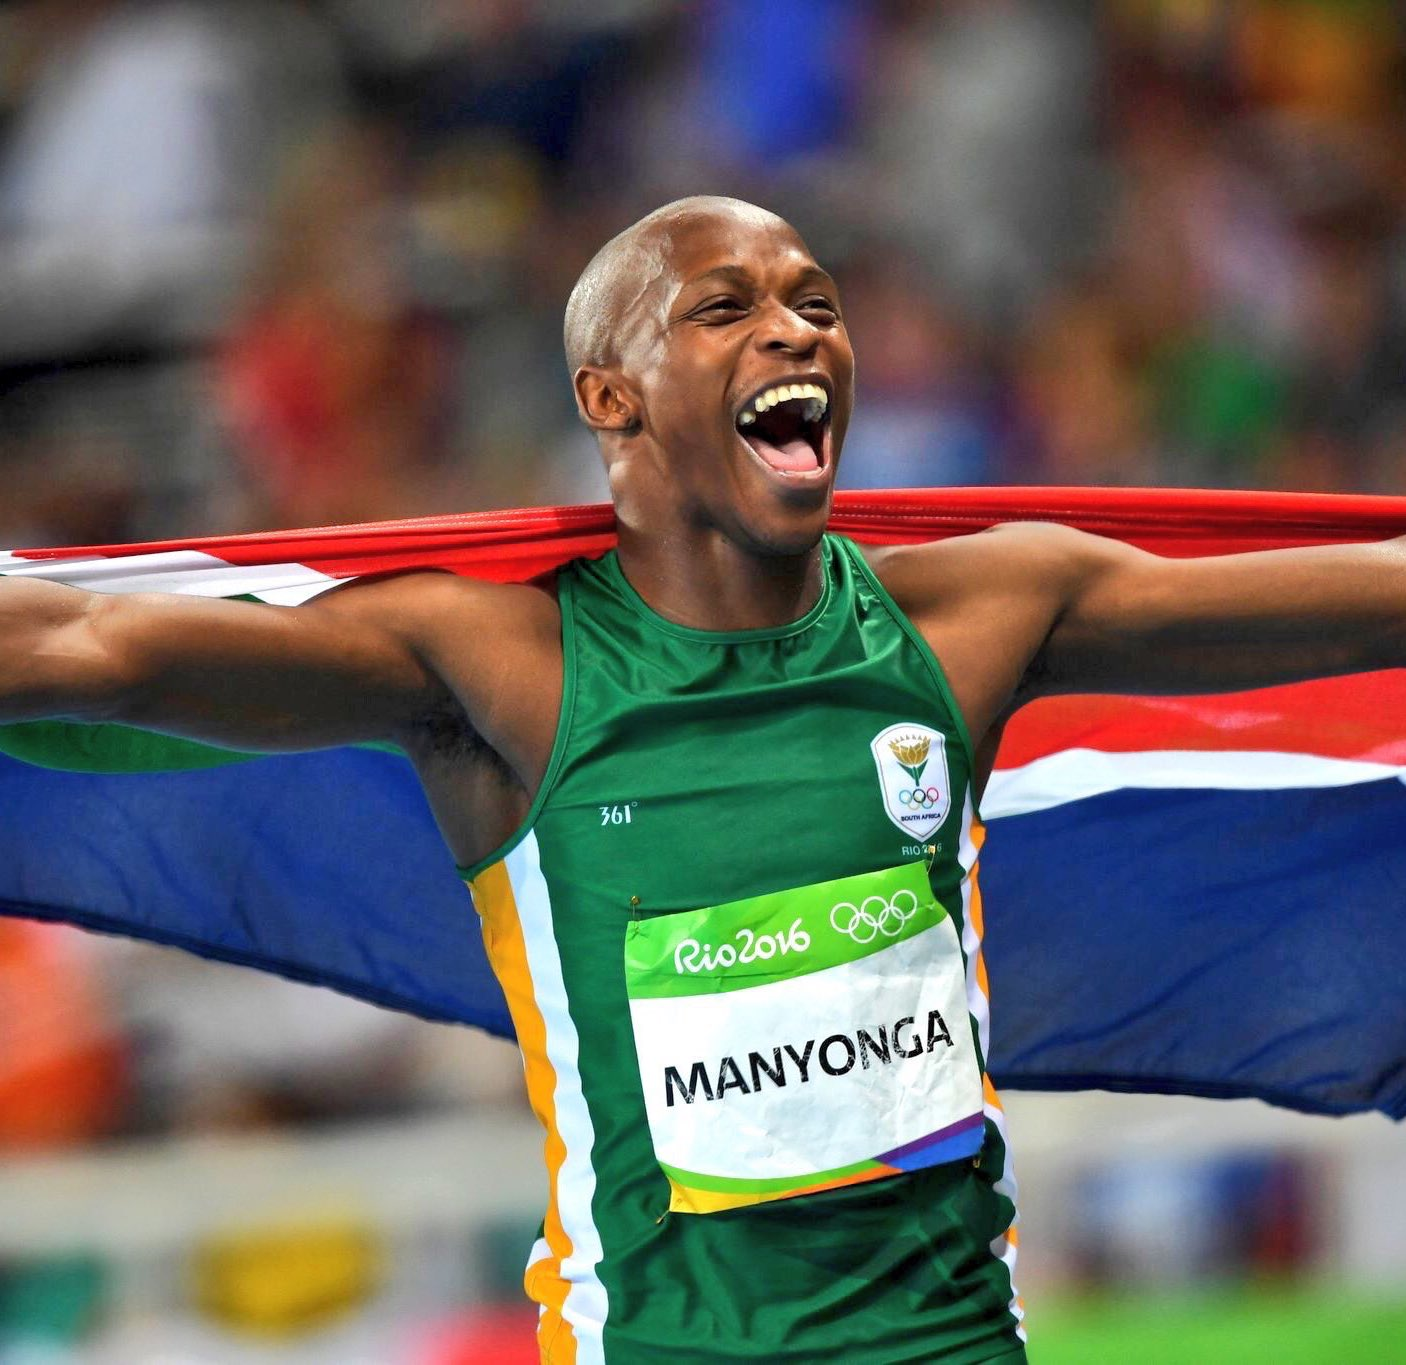 Olympic silver medallist Manyonga suspended